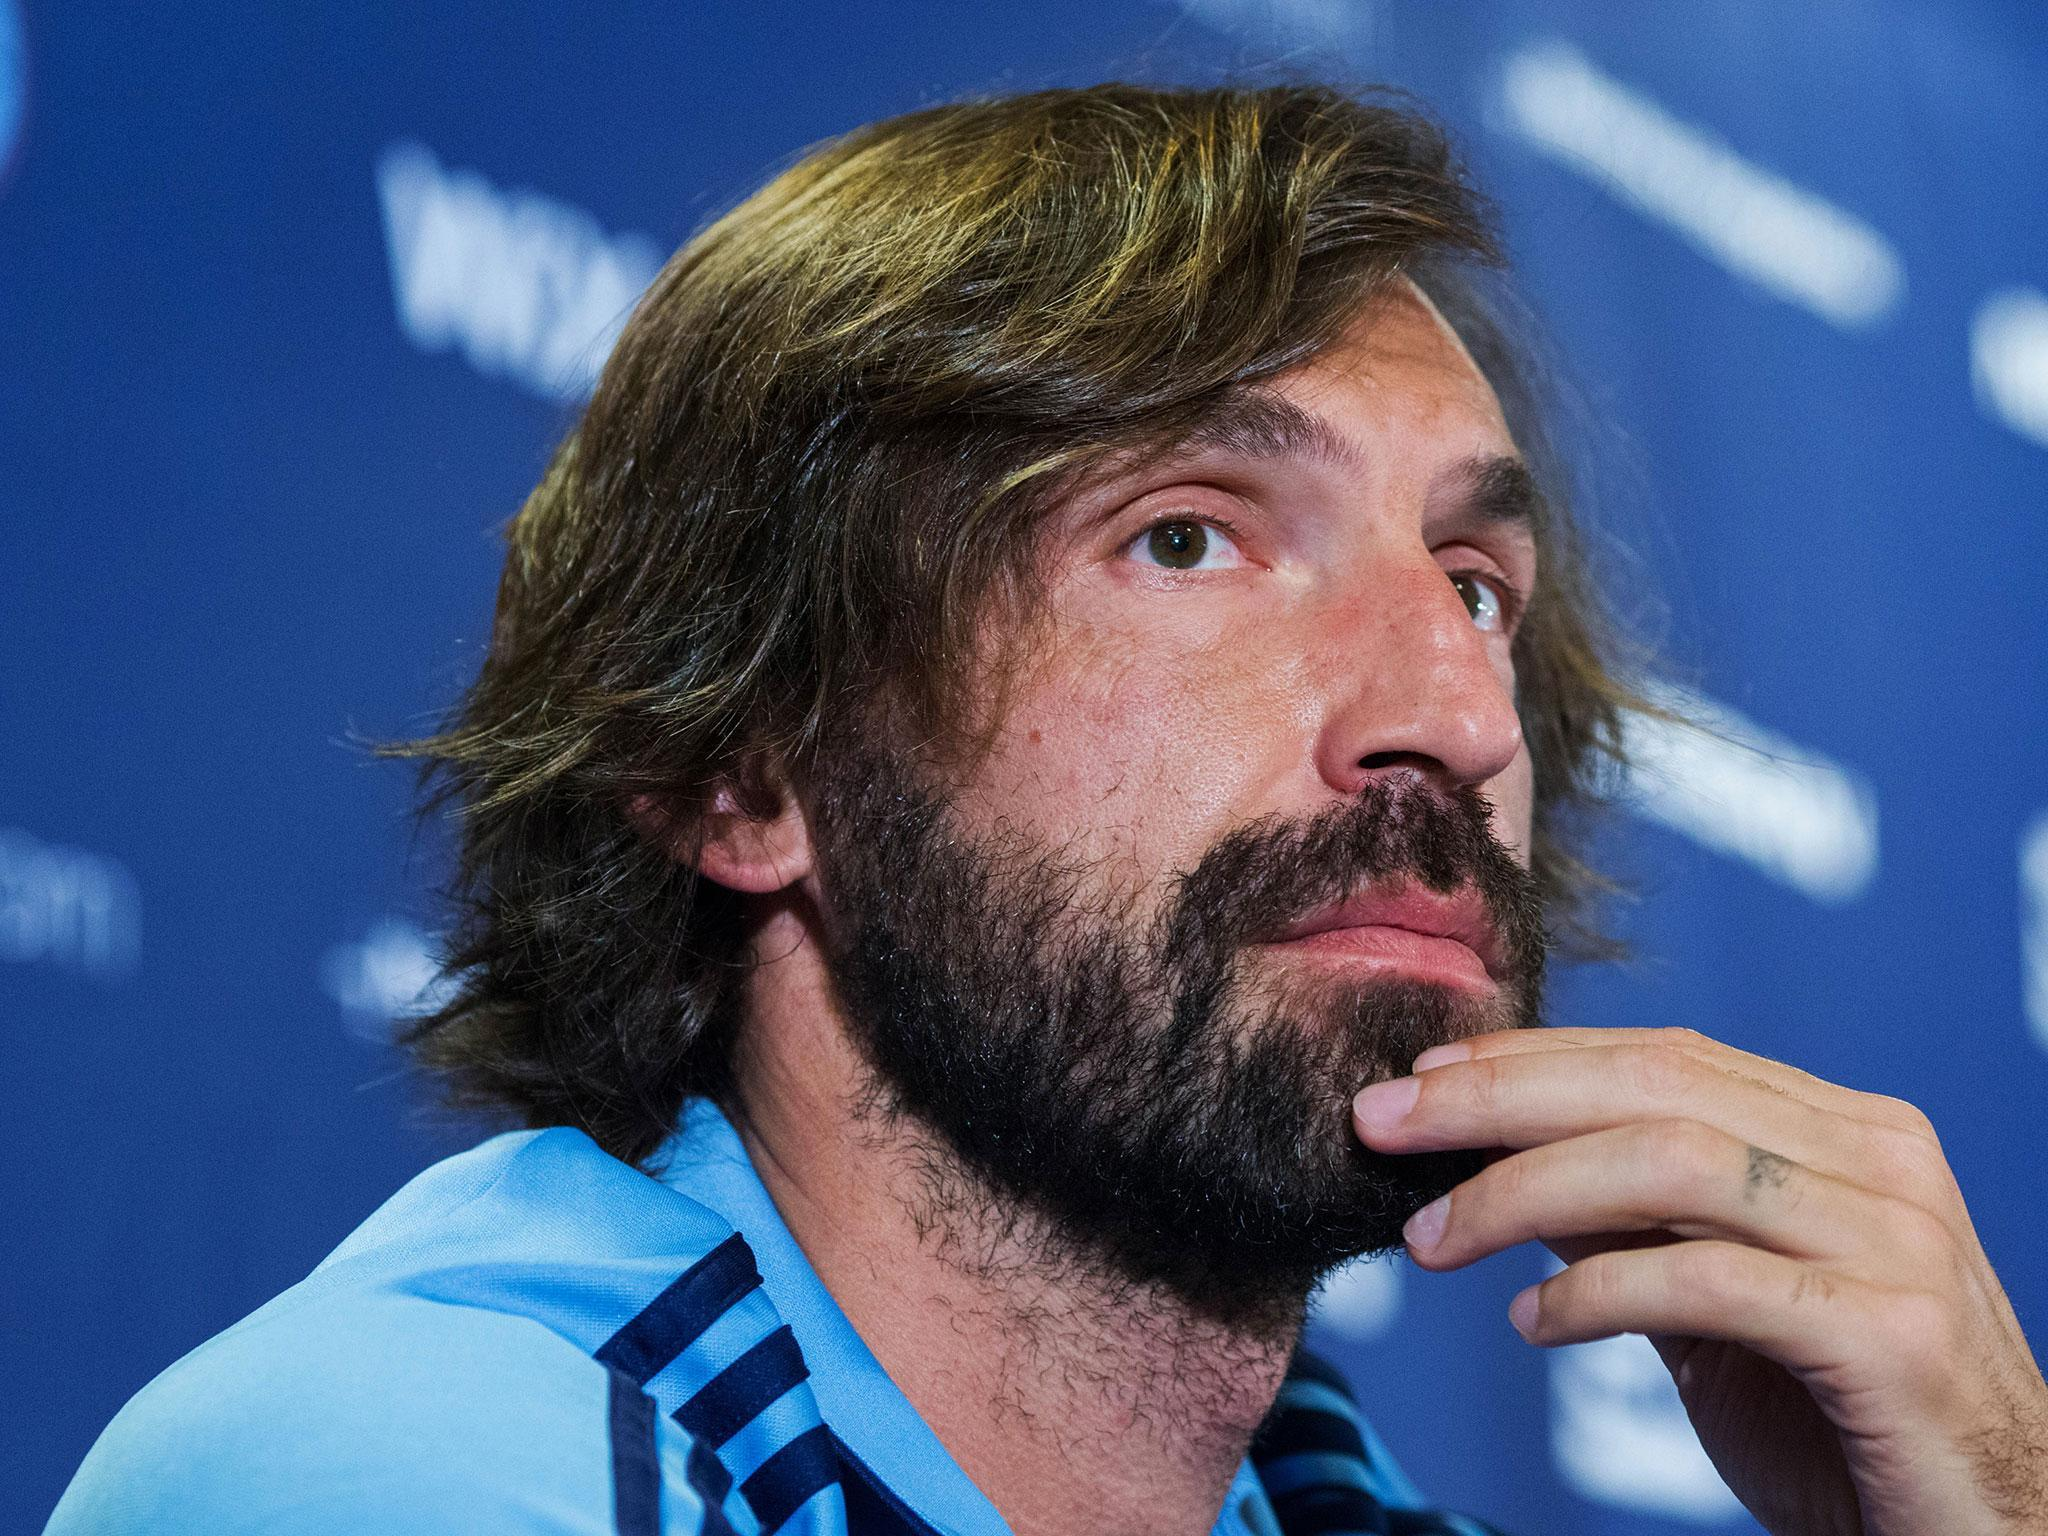 Italy legend and World Cup winner Andrea Pirlo set to retire from